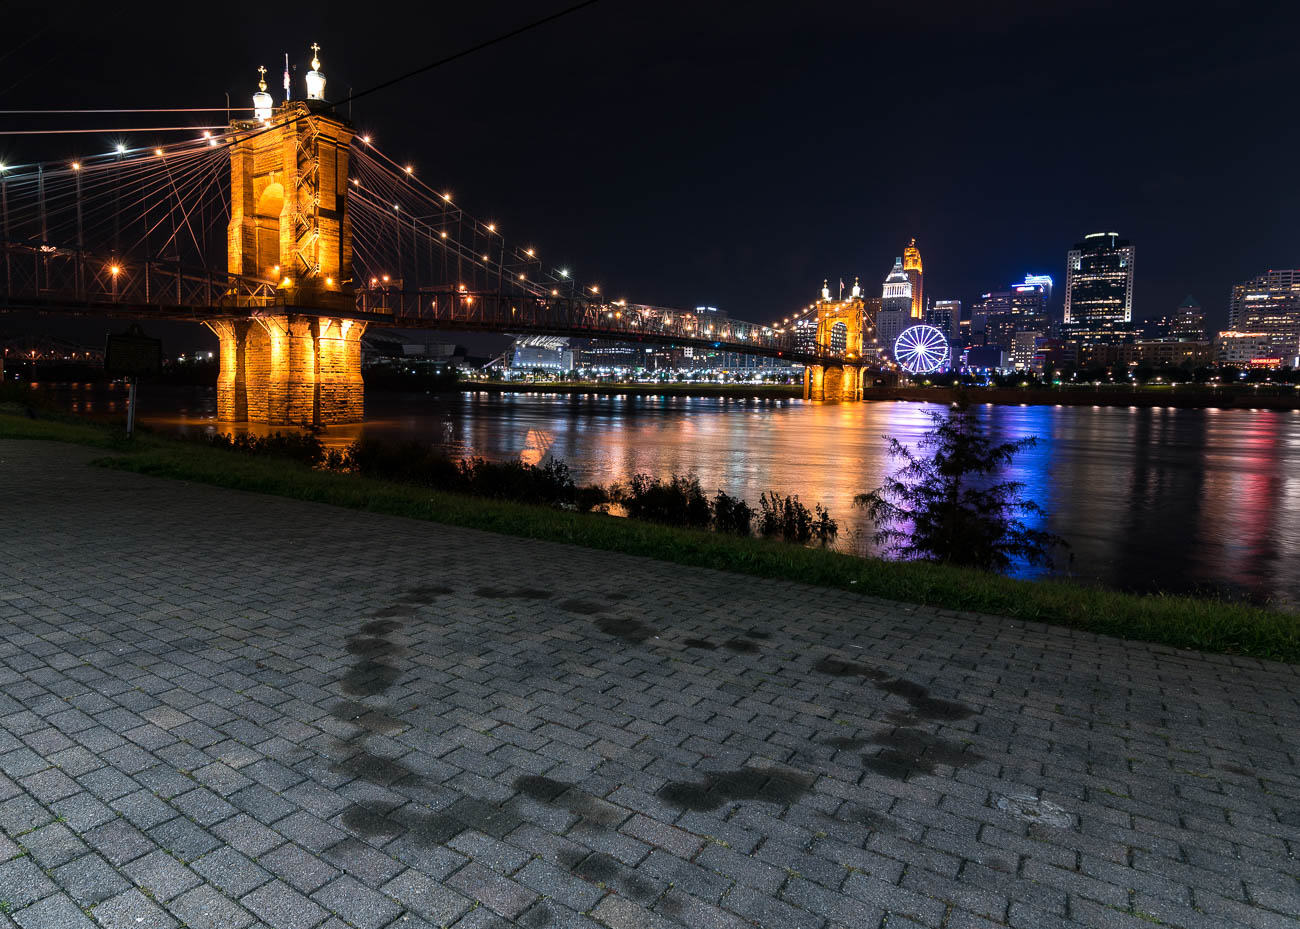 Valentine's Day is all about love. We get it. But why not fall in love with Cincinnati this year? I mean, having a special someone is great, too. Either way, here are some interesting options to get you (or you and your significant other) out and about in the city. / Image: Phil Armstrong, Cincinnati Refined // Published: 2.12.19